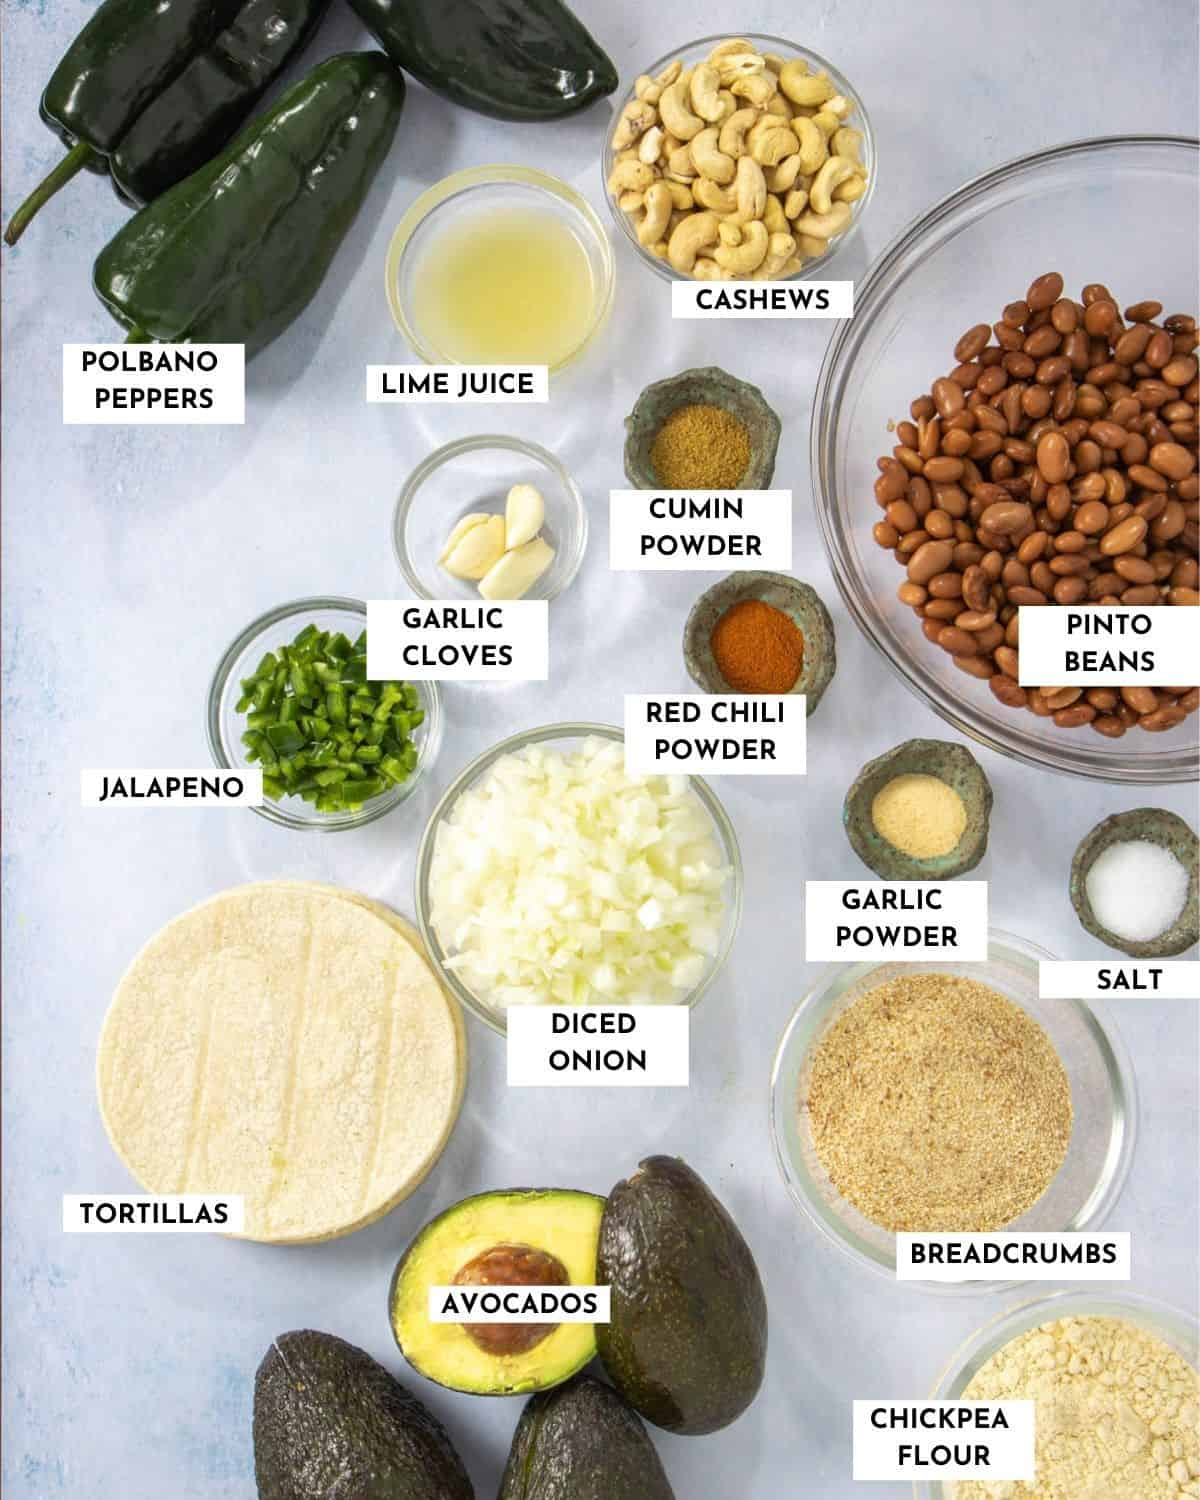 Labeled ingredient list for making fried avocado tacos - check recipe card for details!